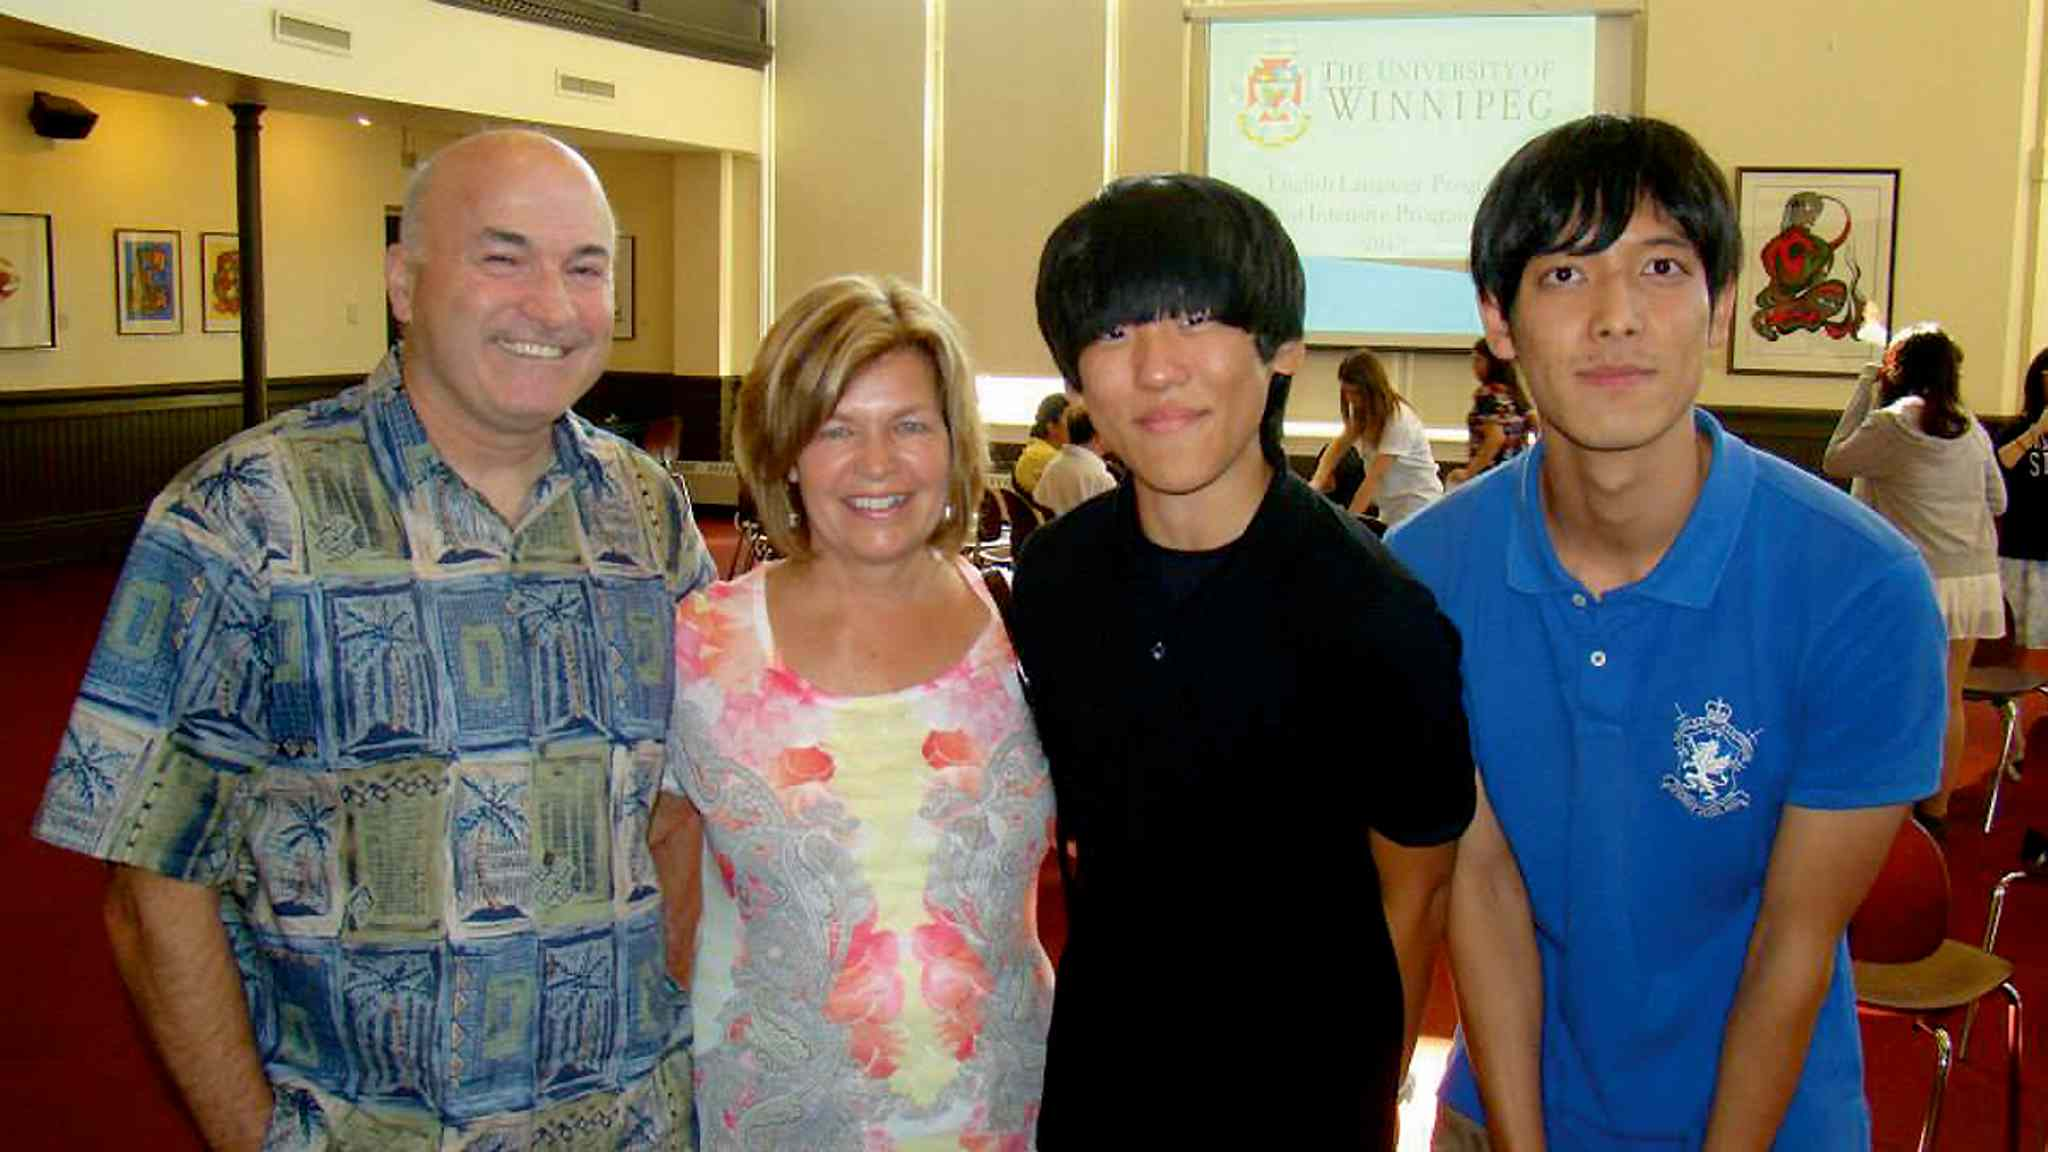 Jeff and Joanne O'Leary with South Korean exchange students Gi Seok Sung and Gi Seong Kim.